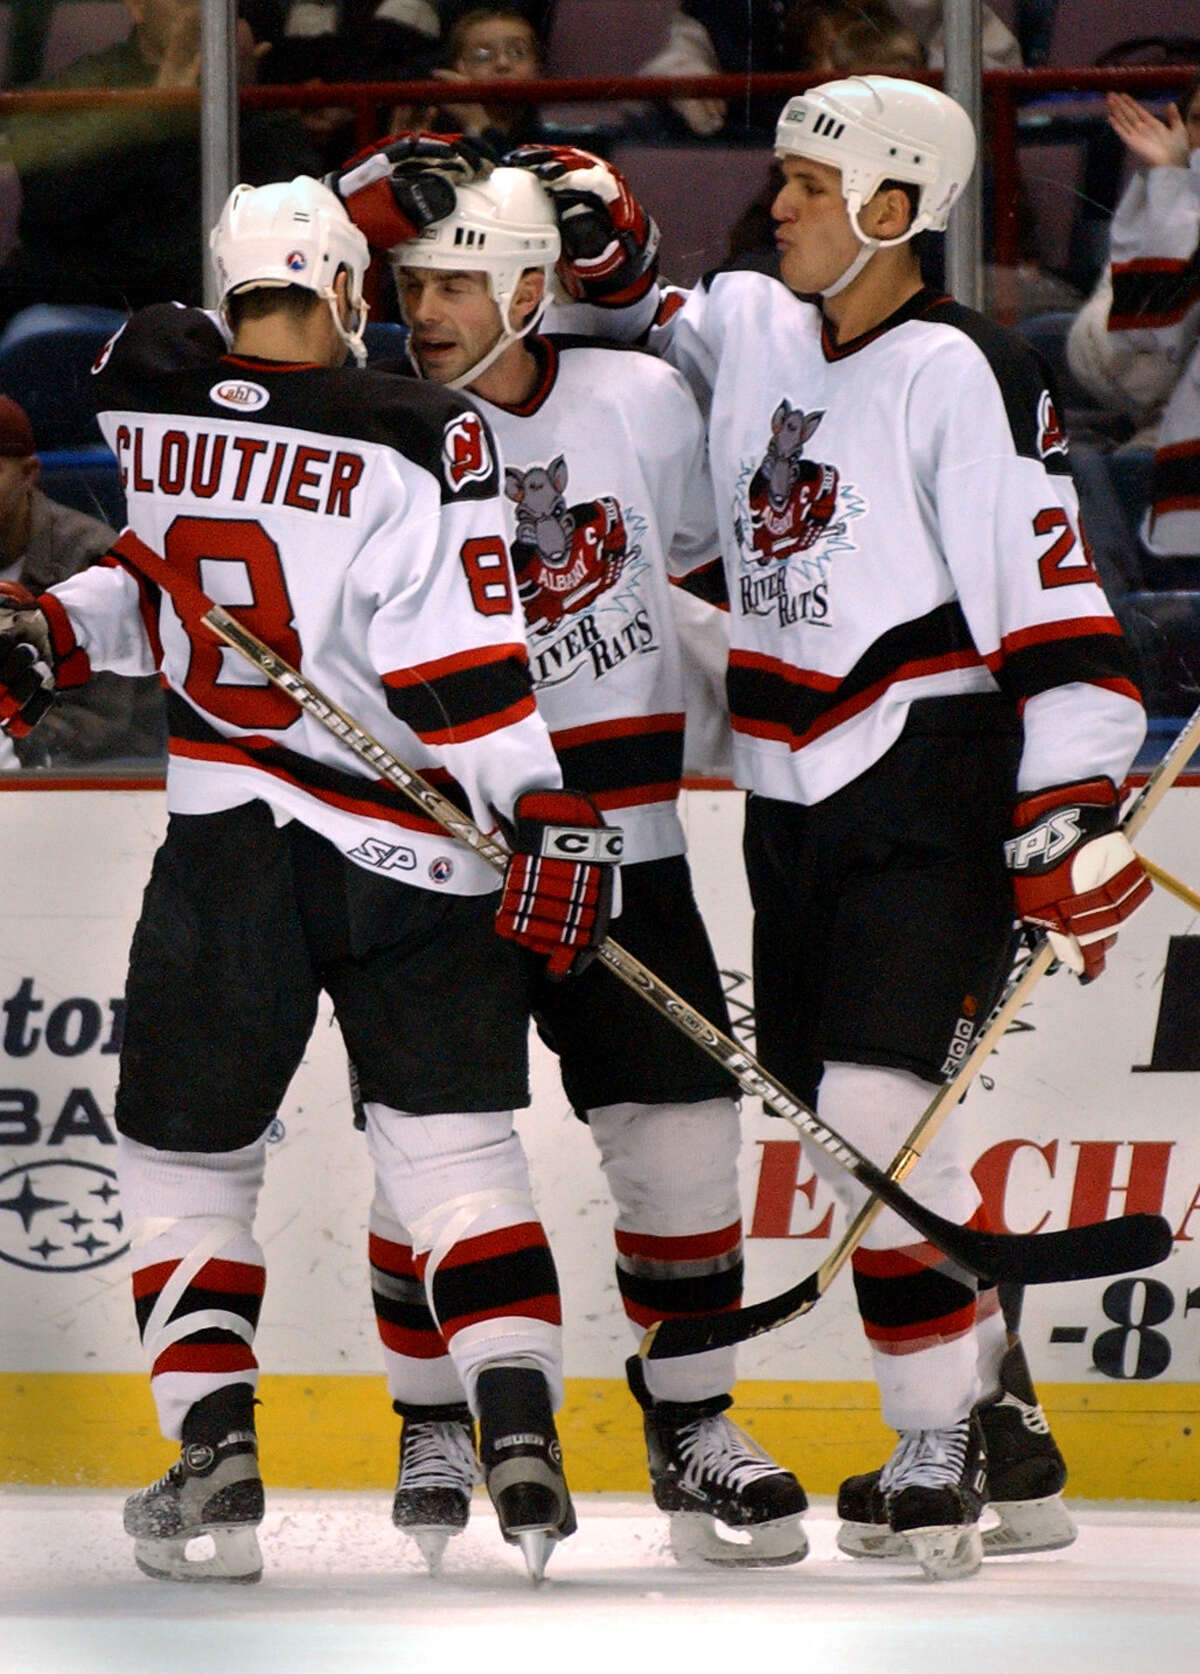 The Albany River Rats' Bruce Gardiner, center, is congratulated by teammates Sylvain Cloutier and Lucas Nehrling after he put Albany on the board with a goal in the second period of Friday's hockey game against Worcester at the Pepsi Arena February 22, 2002.